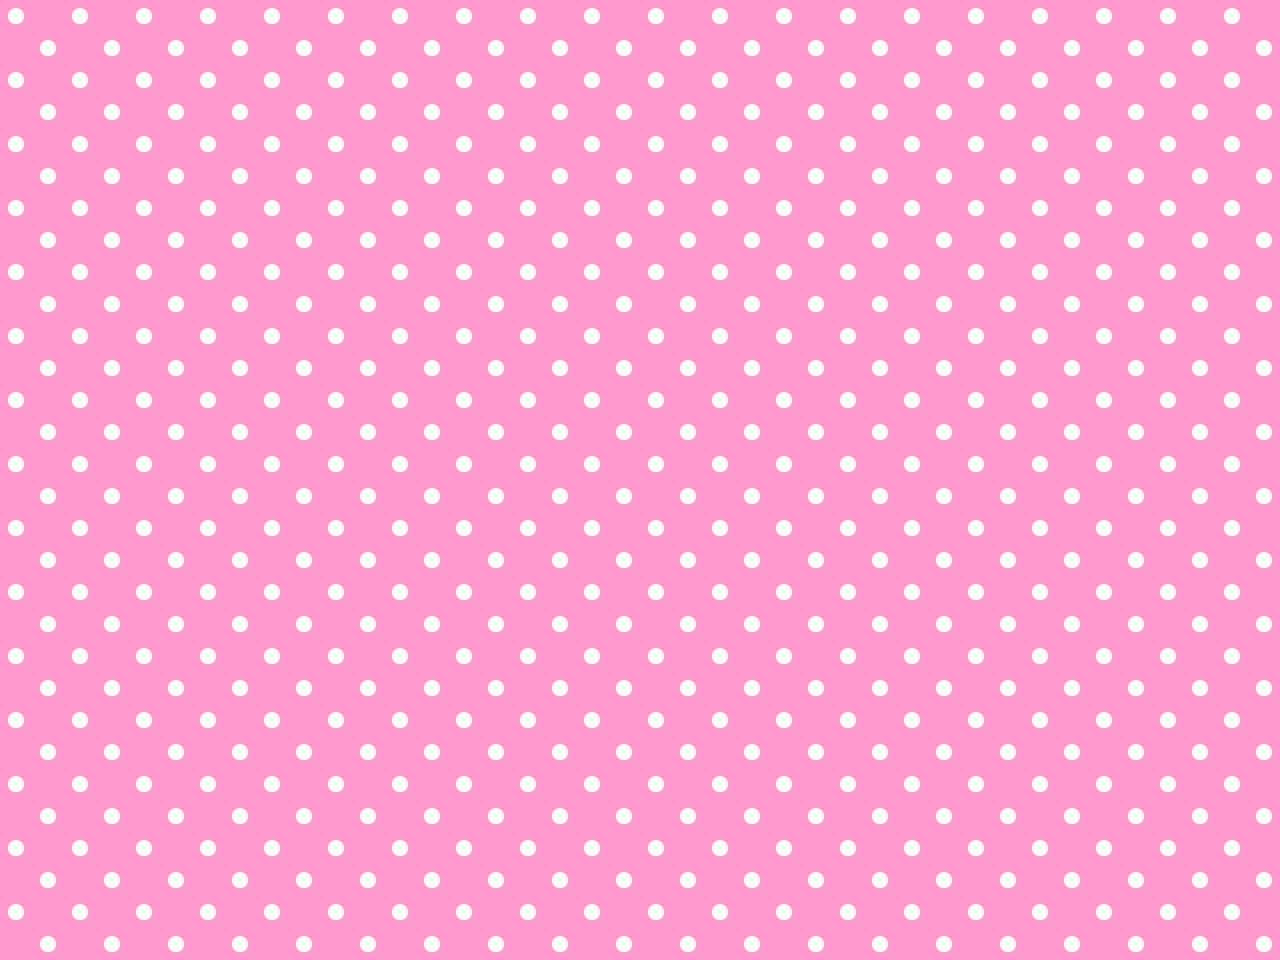 Polka dotted background for twitter or other Pink Flickr   Photo 1280x960